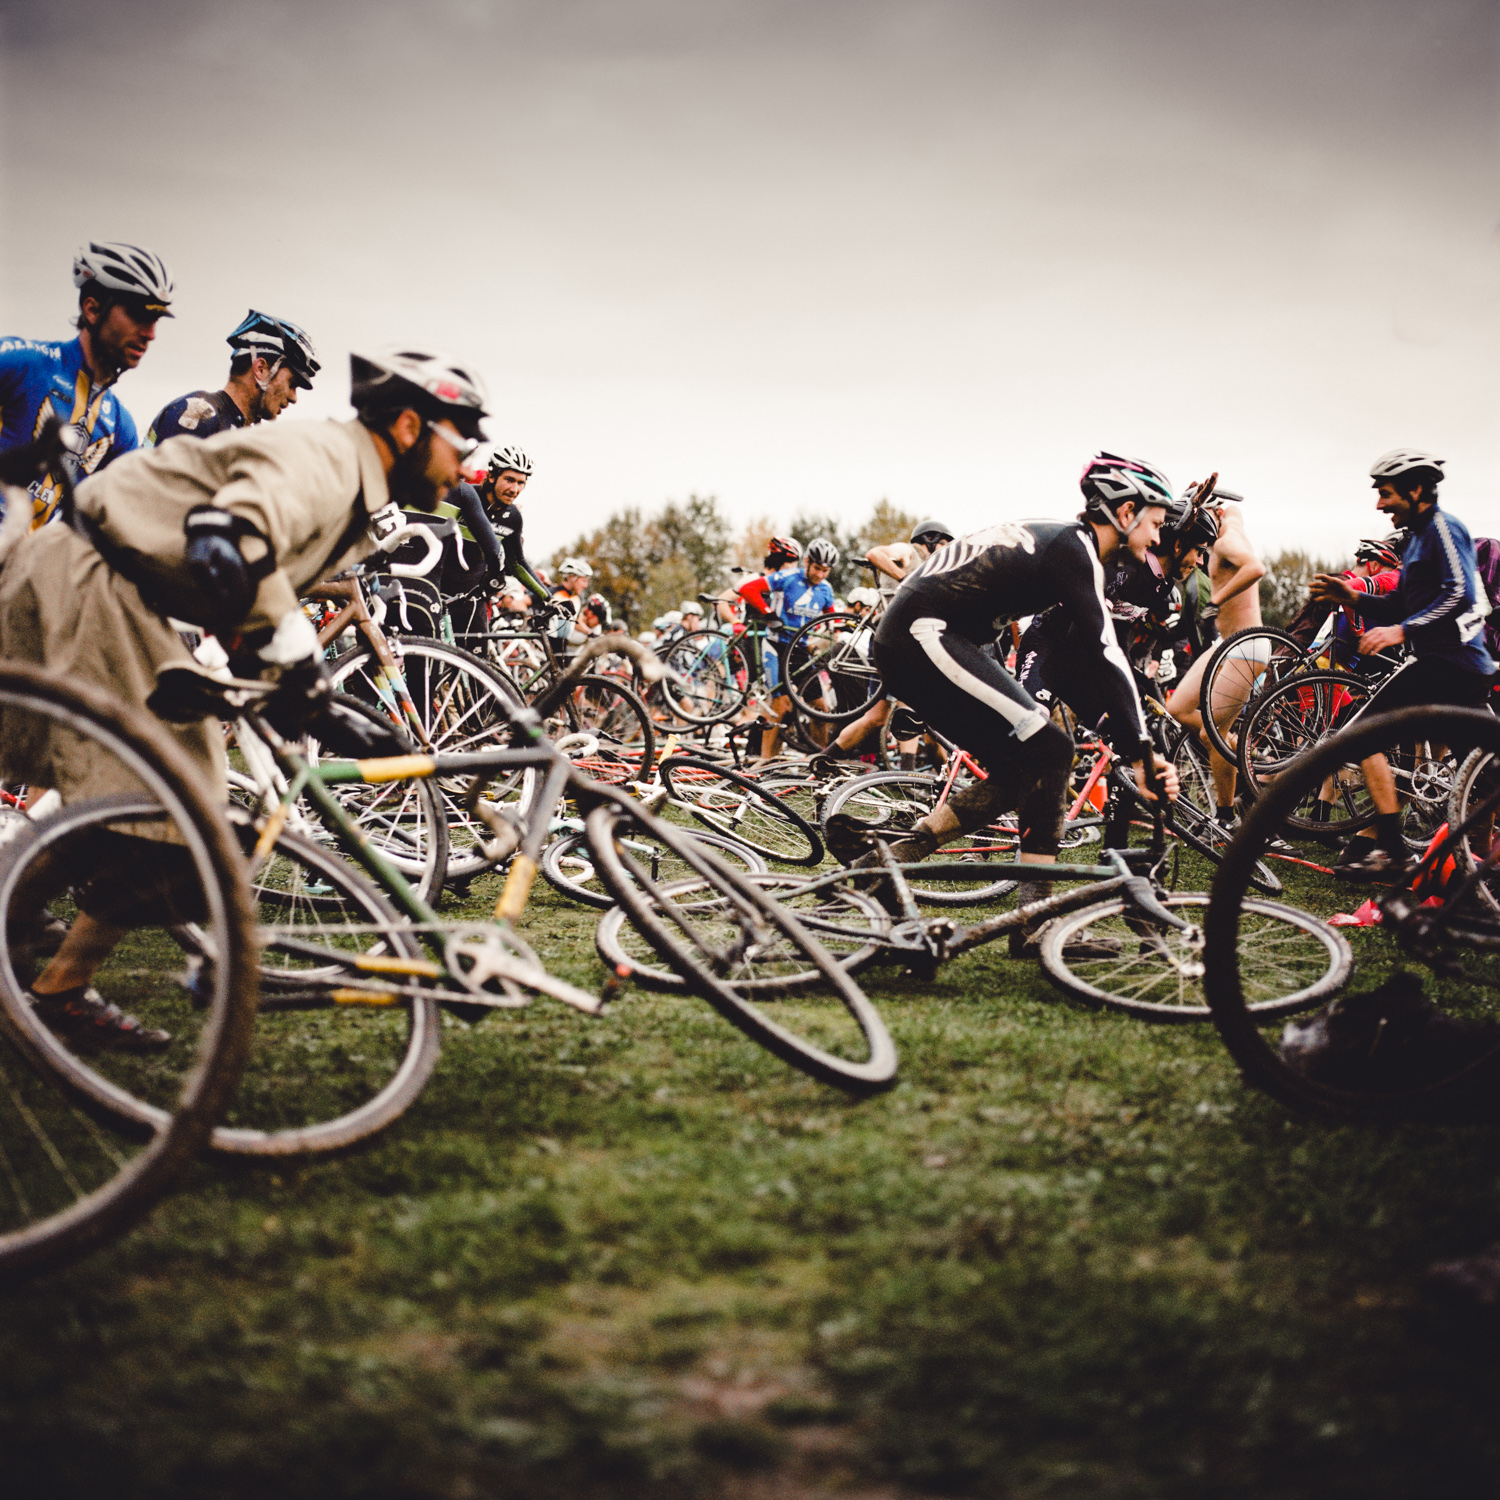 cyclocross_photography-7.jpg